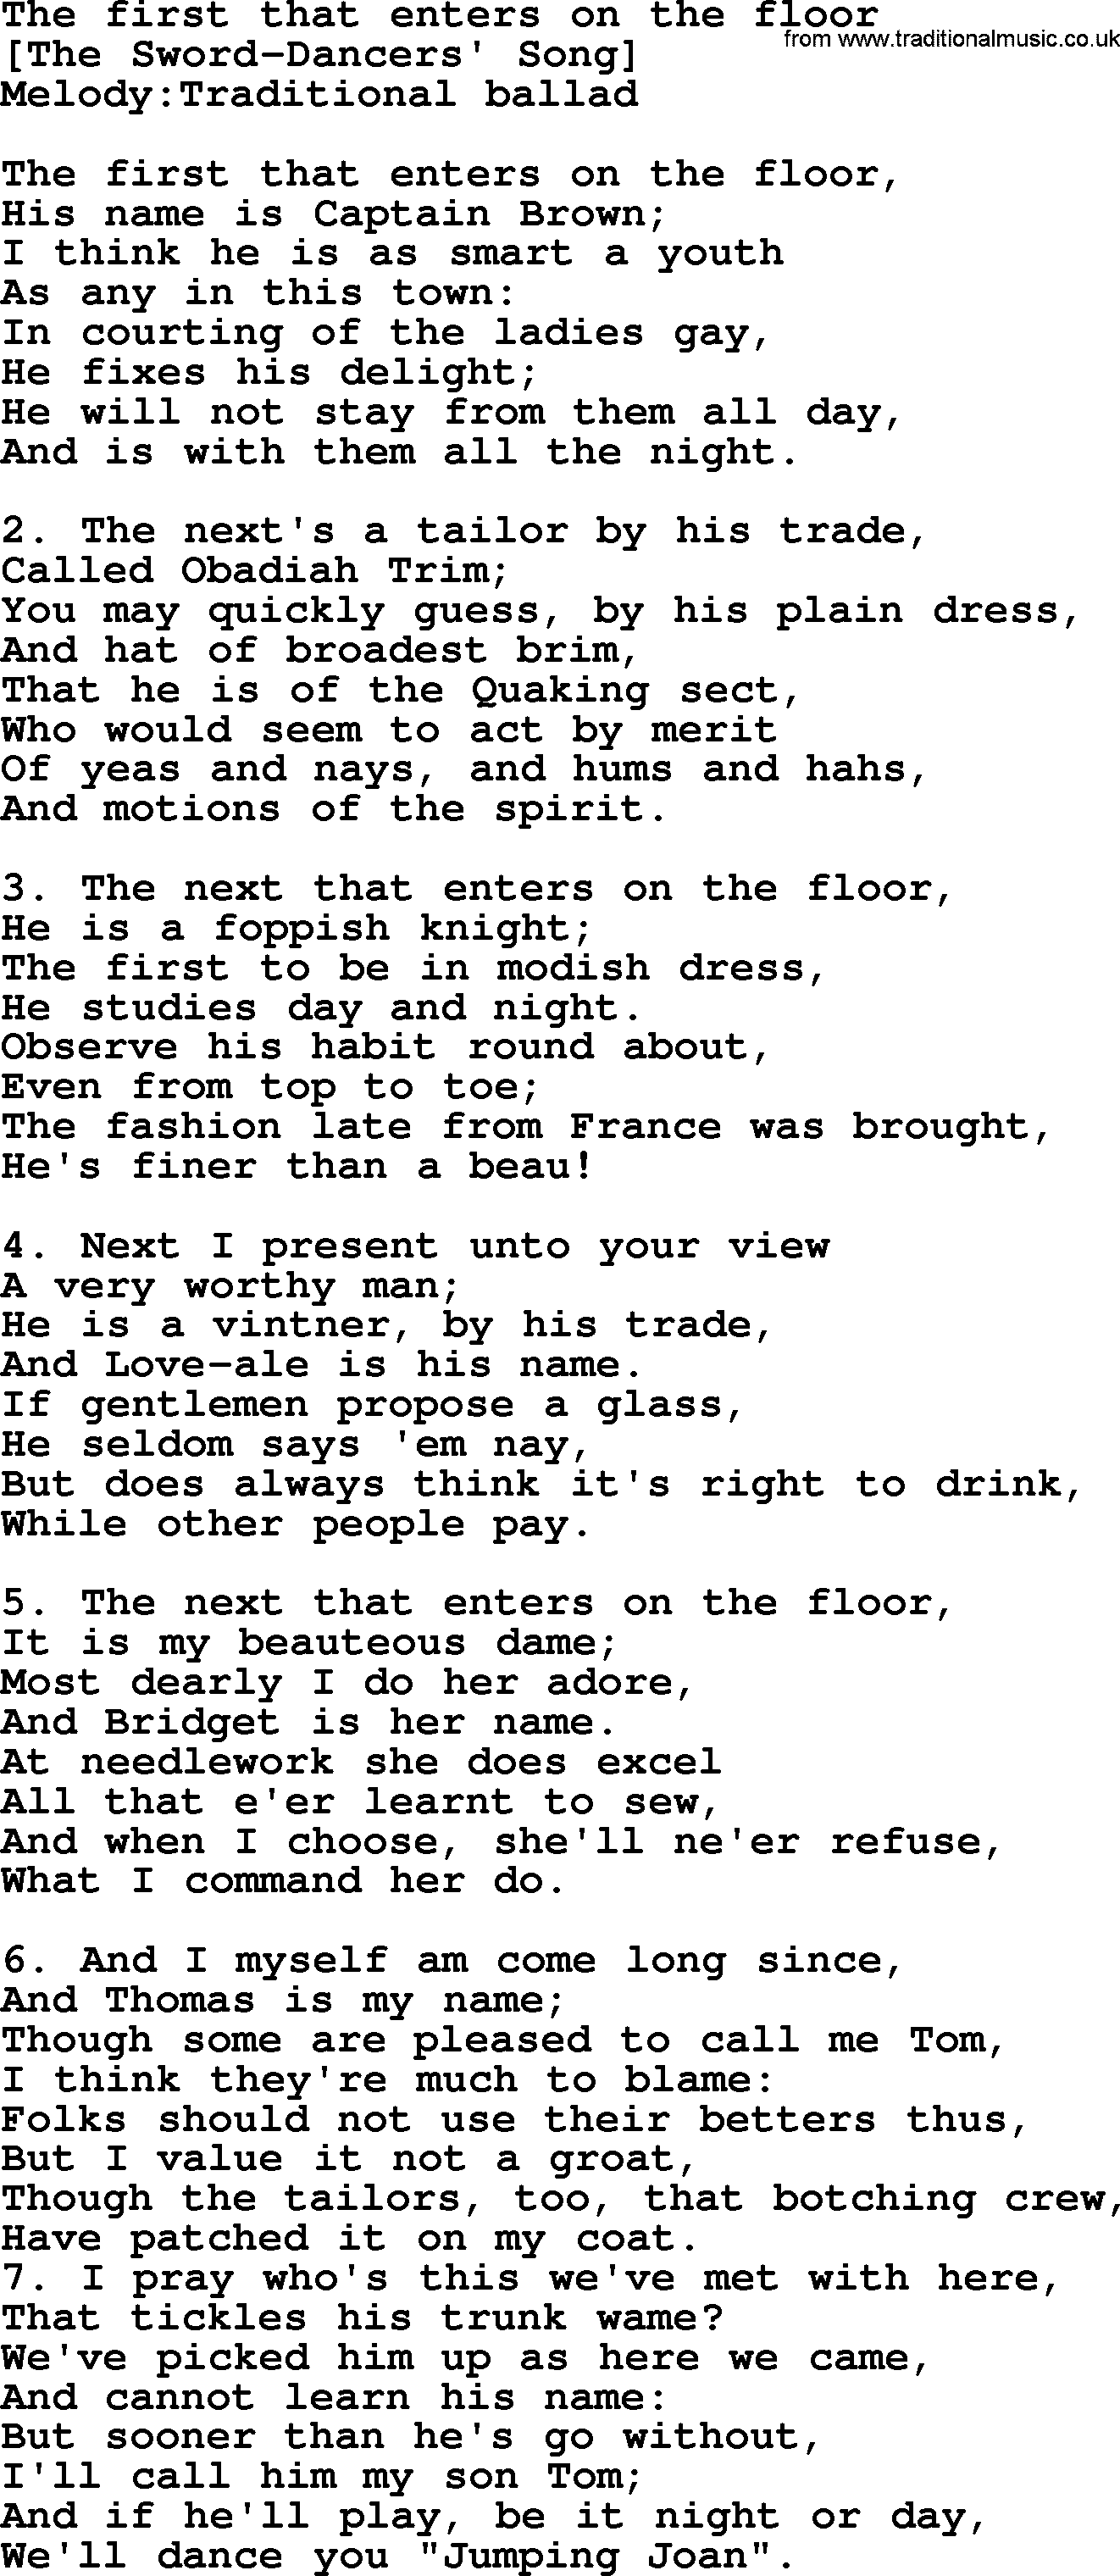 Old English Song: The First That Enters On The Floor Lyrics